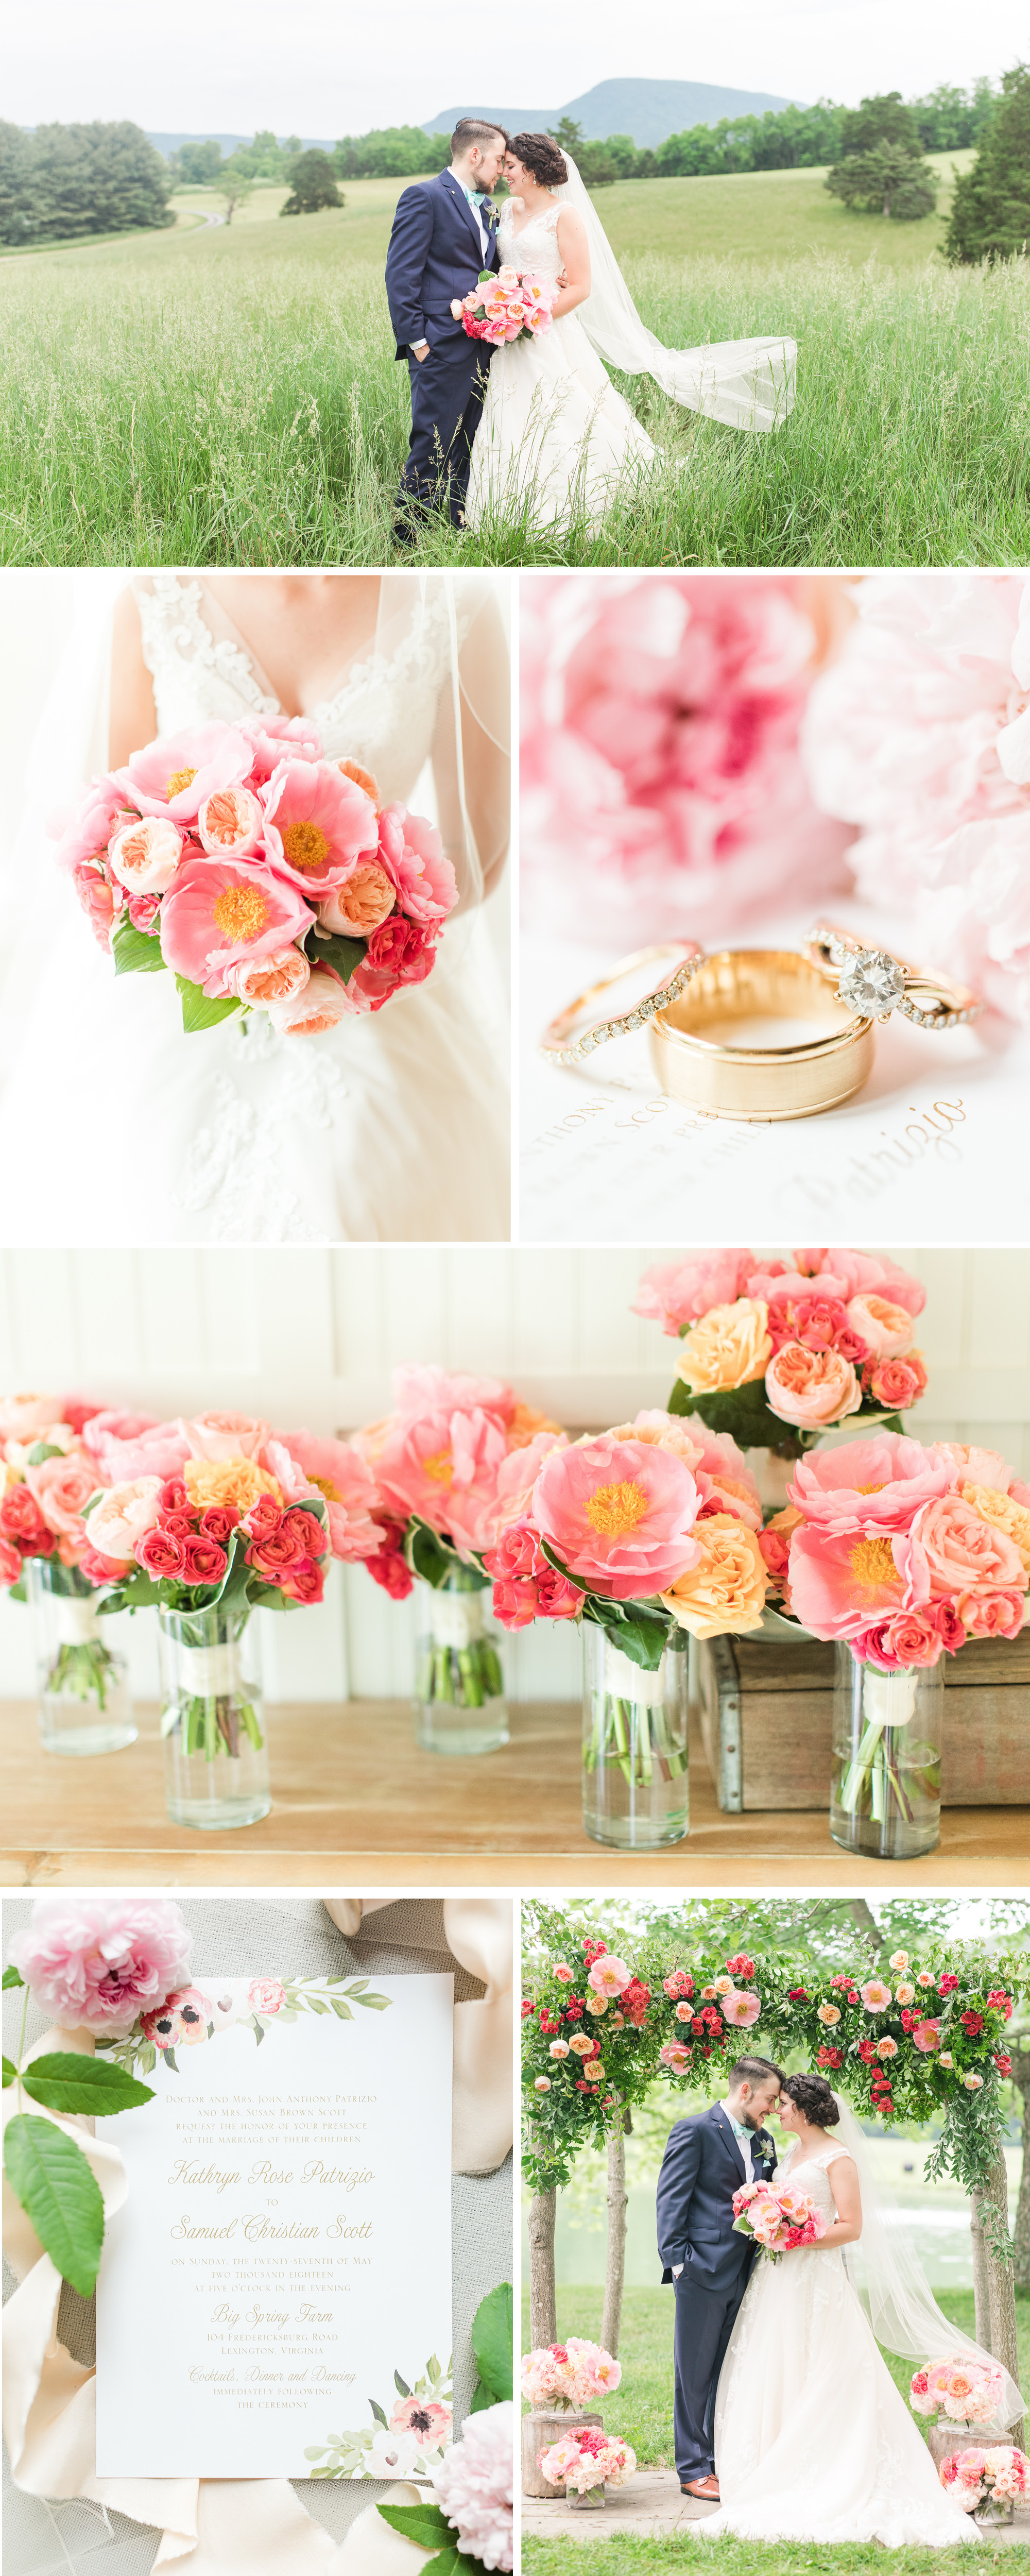 A Coral Inspired Summer Wedding at Big Spring Farm by Katelyn James Photography